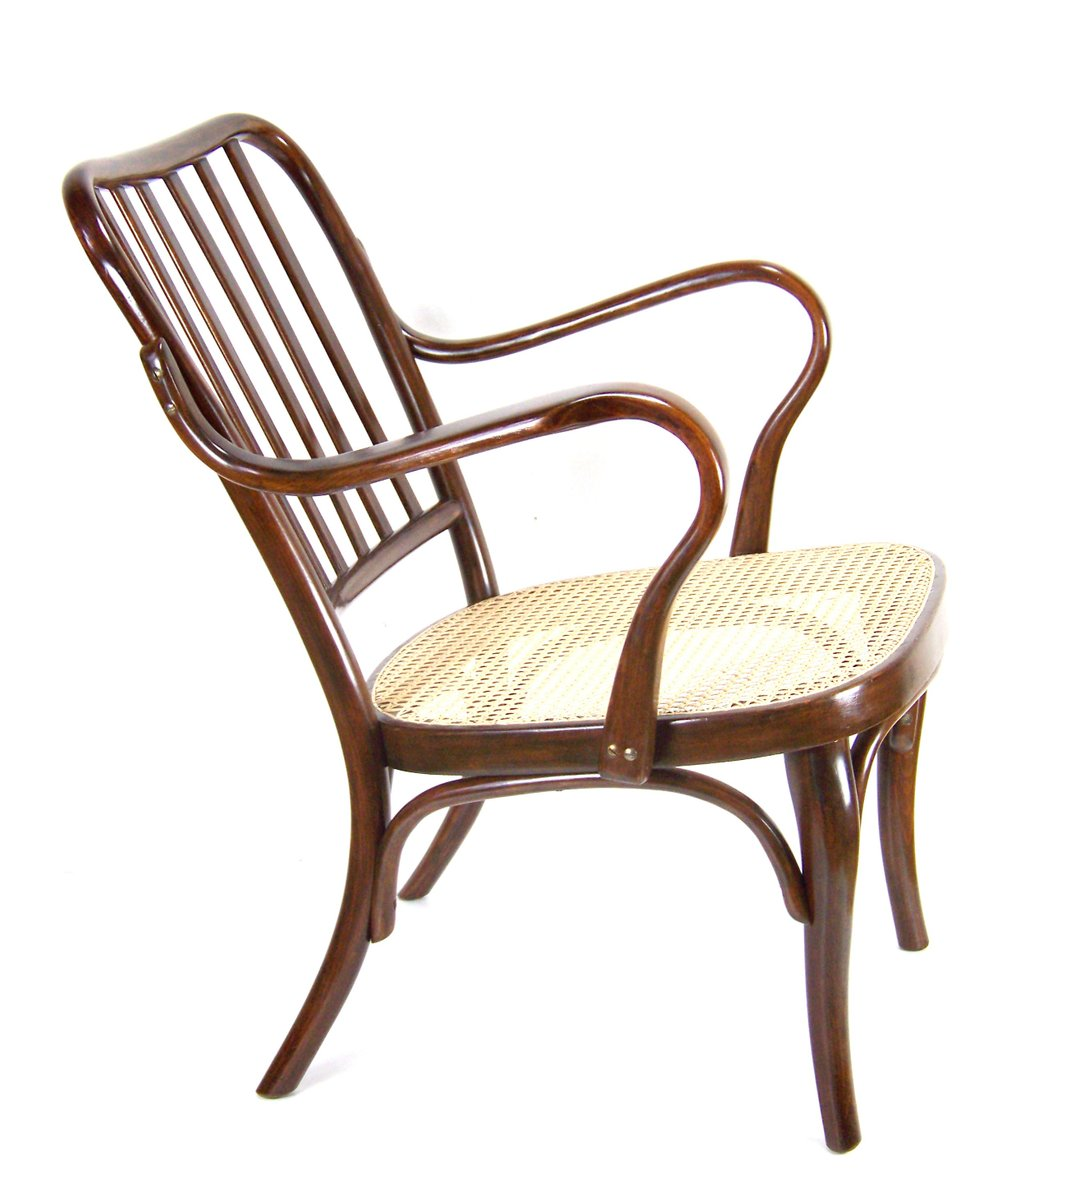 A752 Armchair By Josef Frank For Thonet 1933 For Sale At